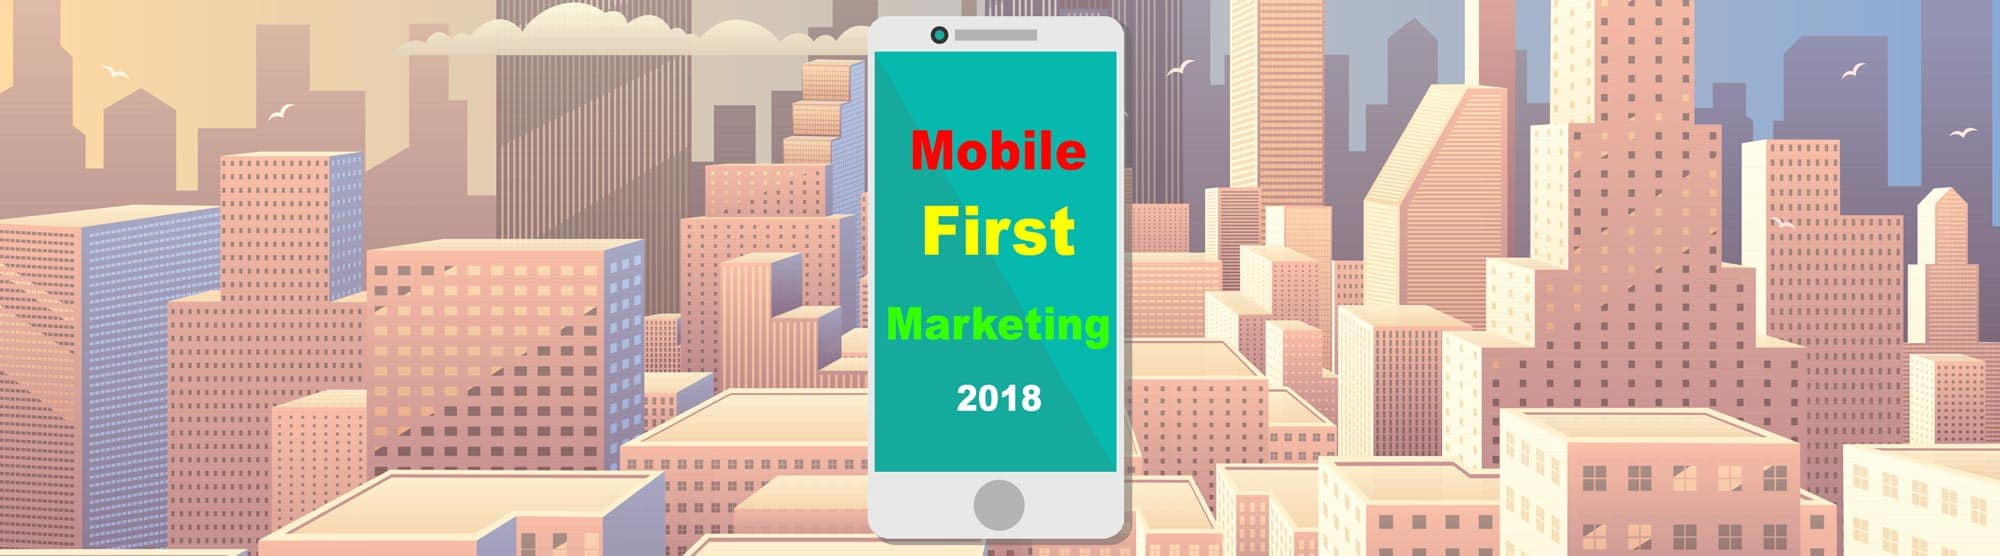 Online ordering mobile first marketing